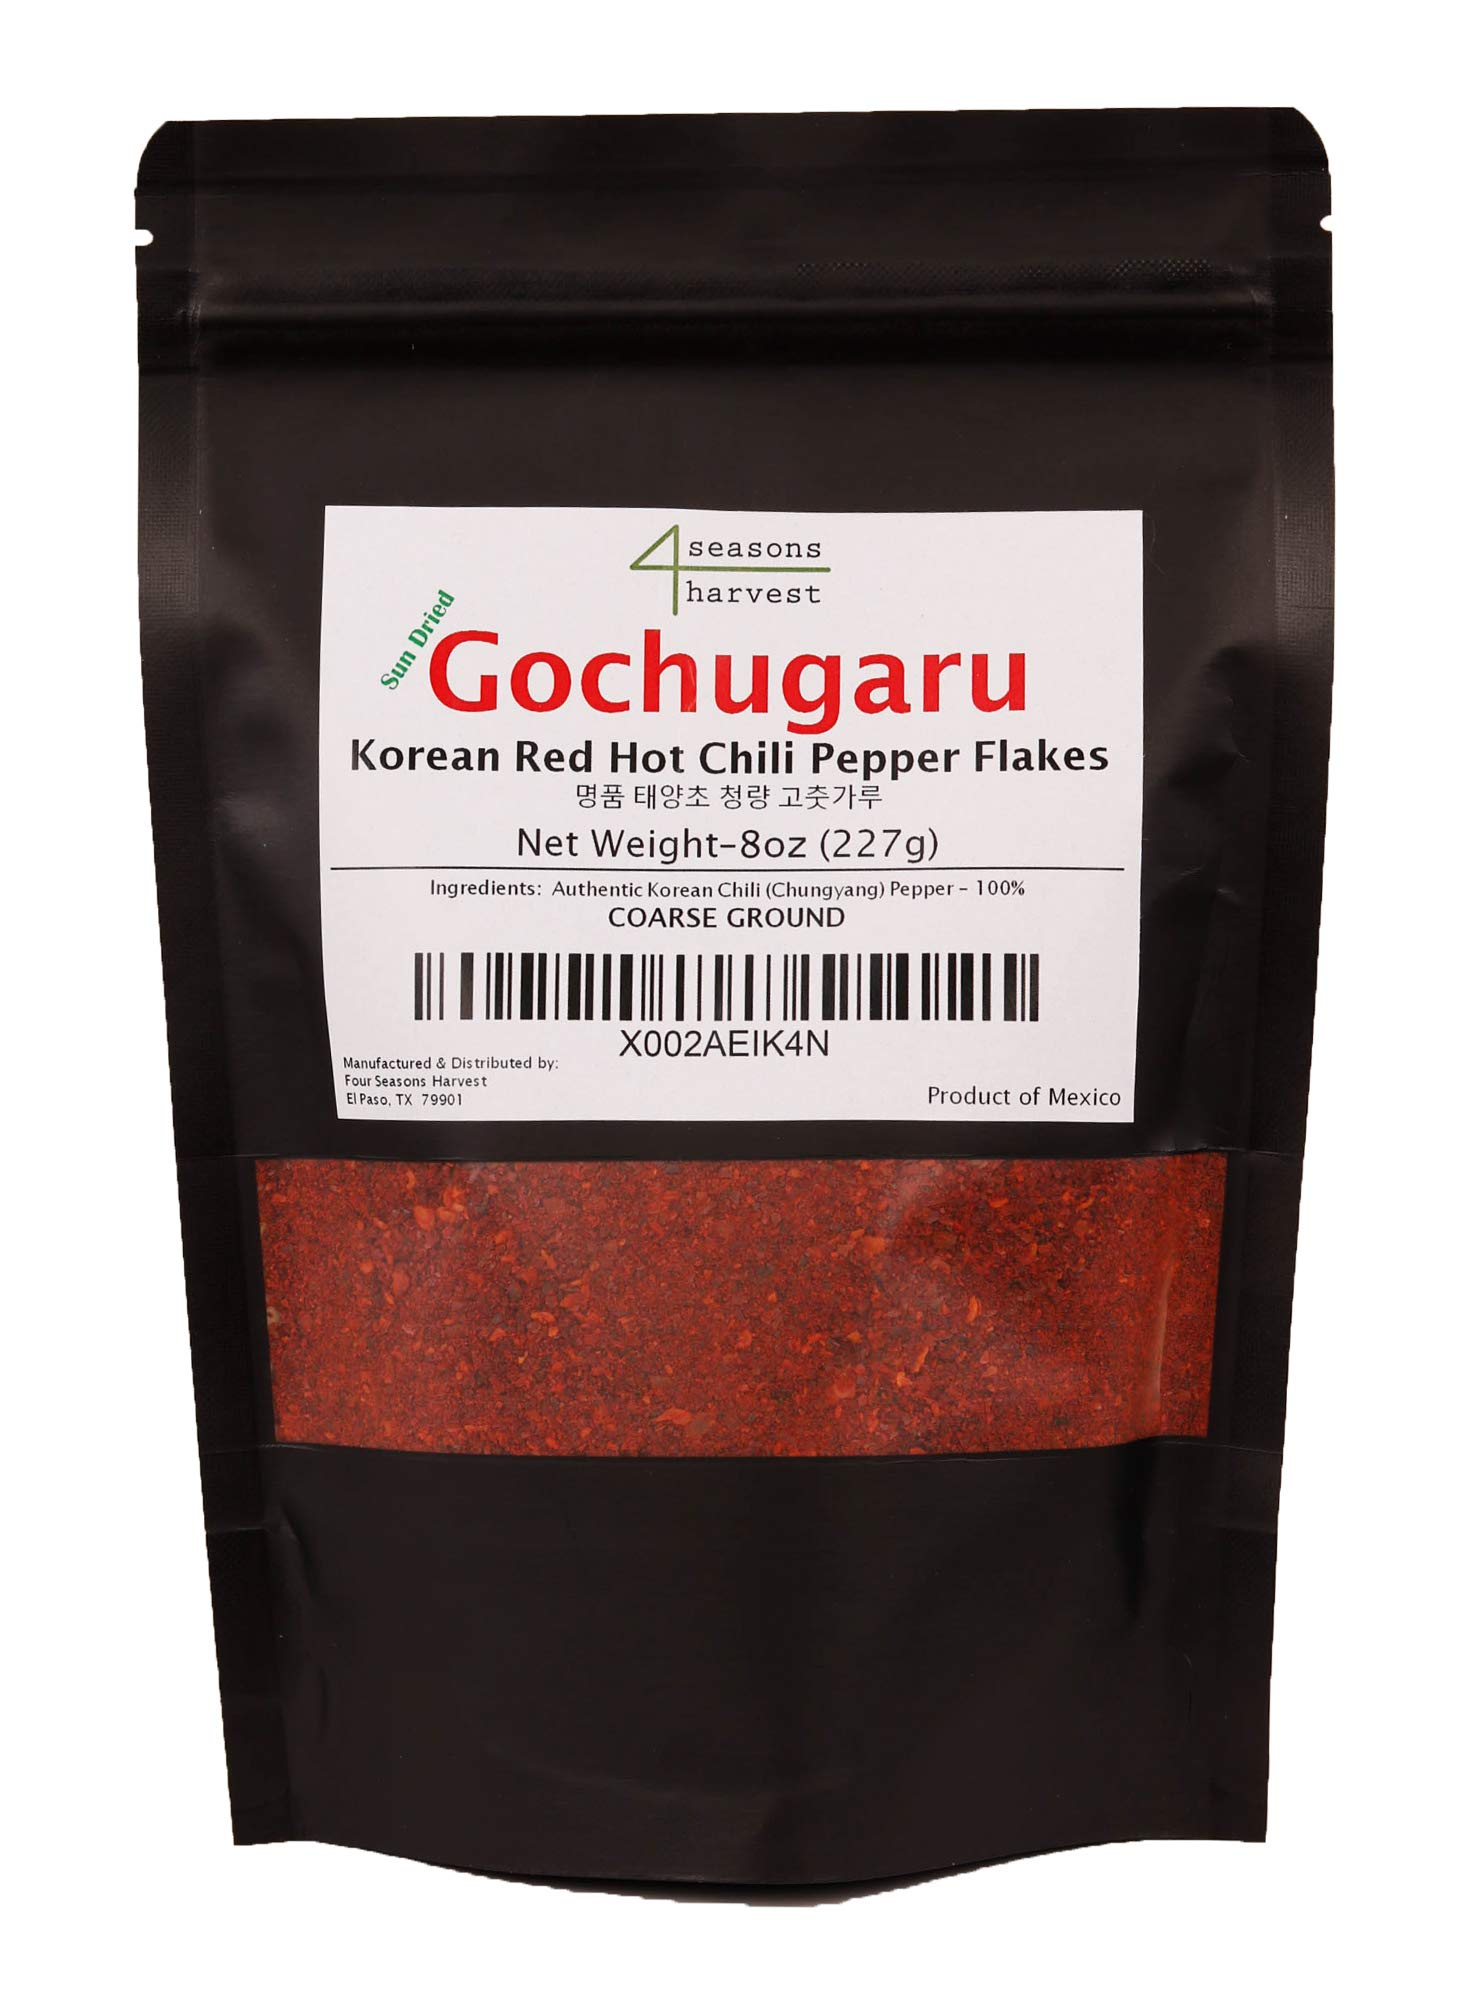 Korean Chili Powder Gochugaru - Sun Dried Non-GMO Red Pepper Flakes - Coarse Gound (8oz)